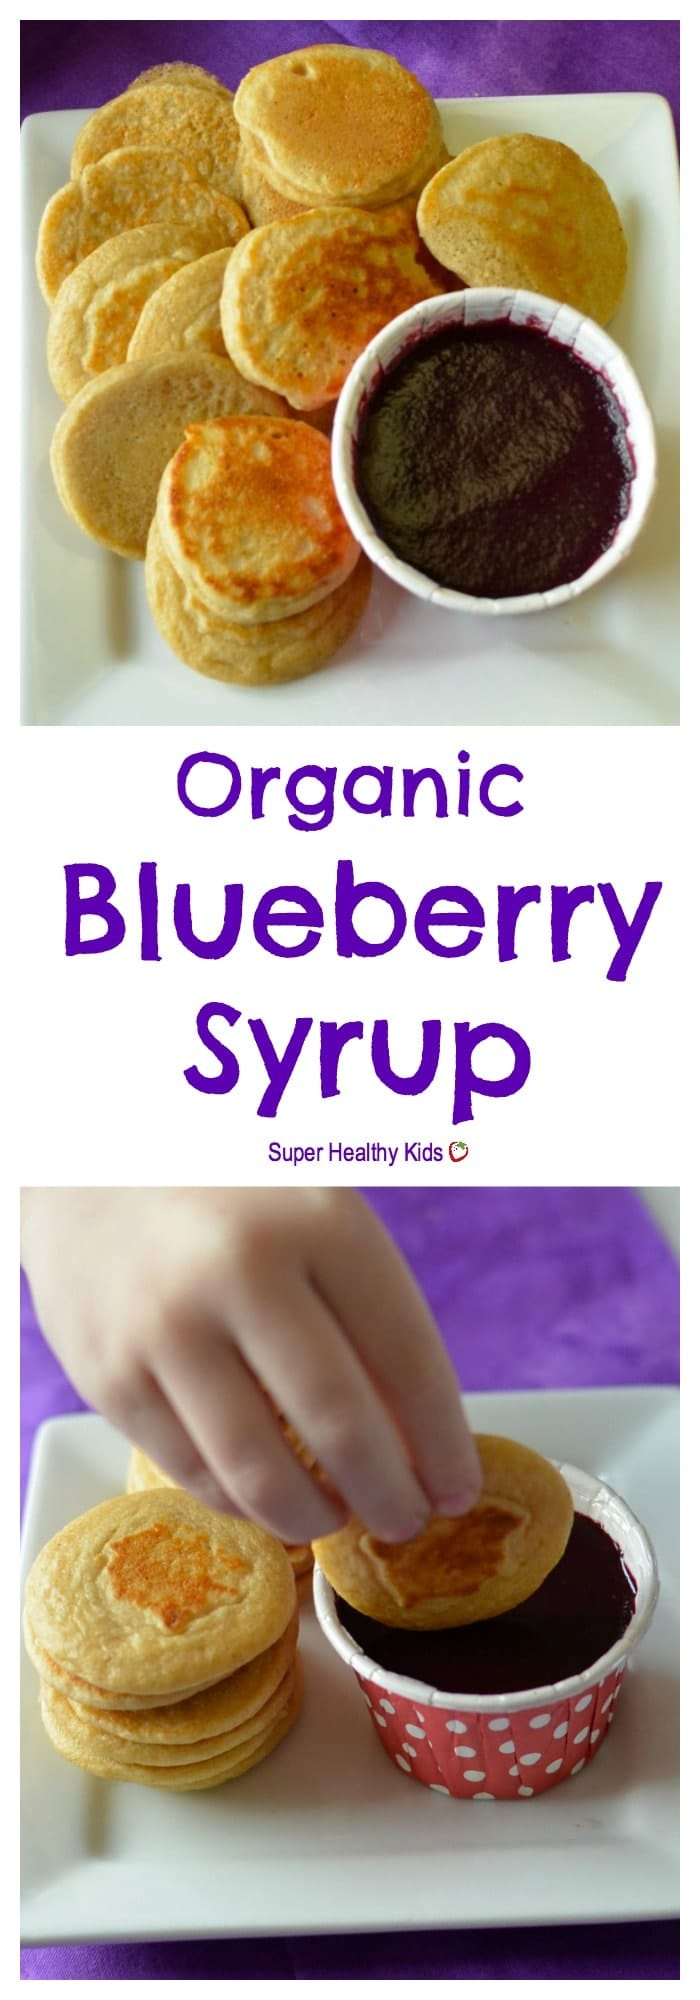 FOOD - Simple Organic Blueberry Syrup. Toddlers can dip their mini pancakes in this homemade, organic, all-natural blueberry syrup! https://www.superhealthykids.com/simple-organic-blueberry-syrup-recipe/